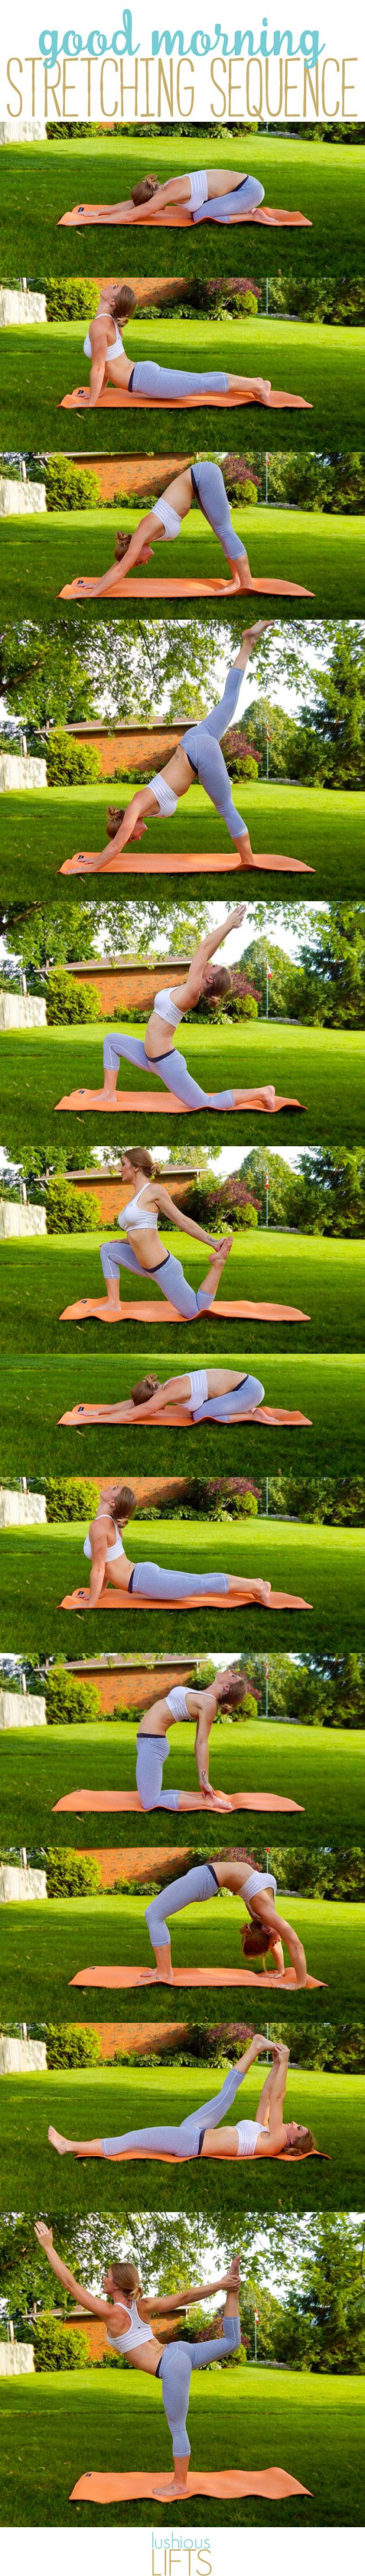 Good Morning Stretching Sequence. A few great stretches to help wake you up & energize you for the day! || lushiouslifts.com